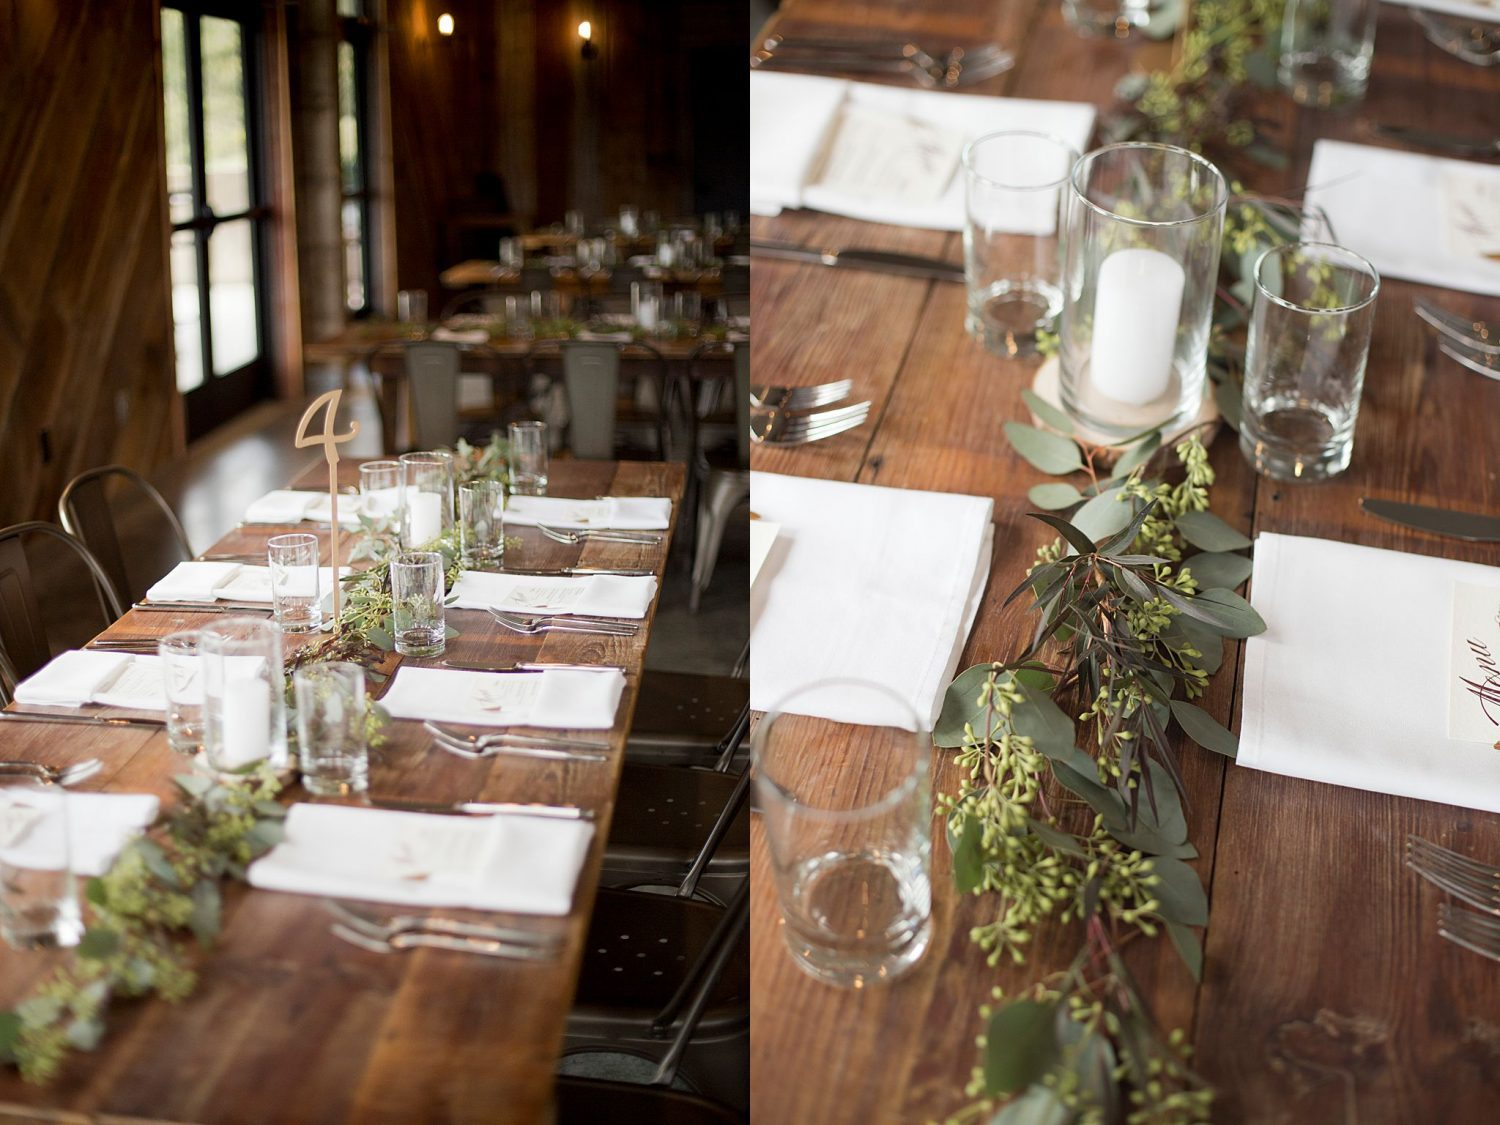 Close up details of the table decor, showing runners of eucalyptus and cloth white napkins at each place setting with a custom menu card.